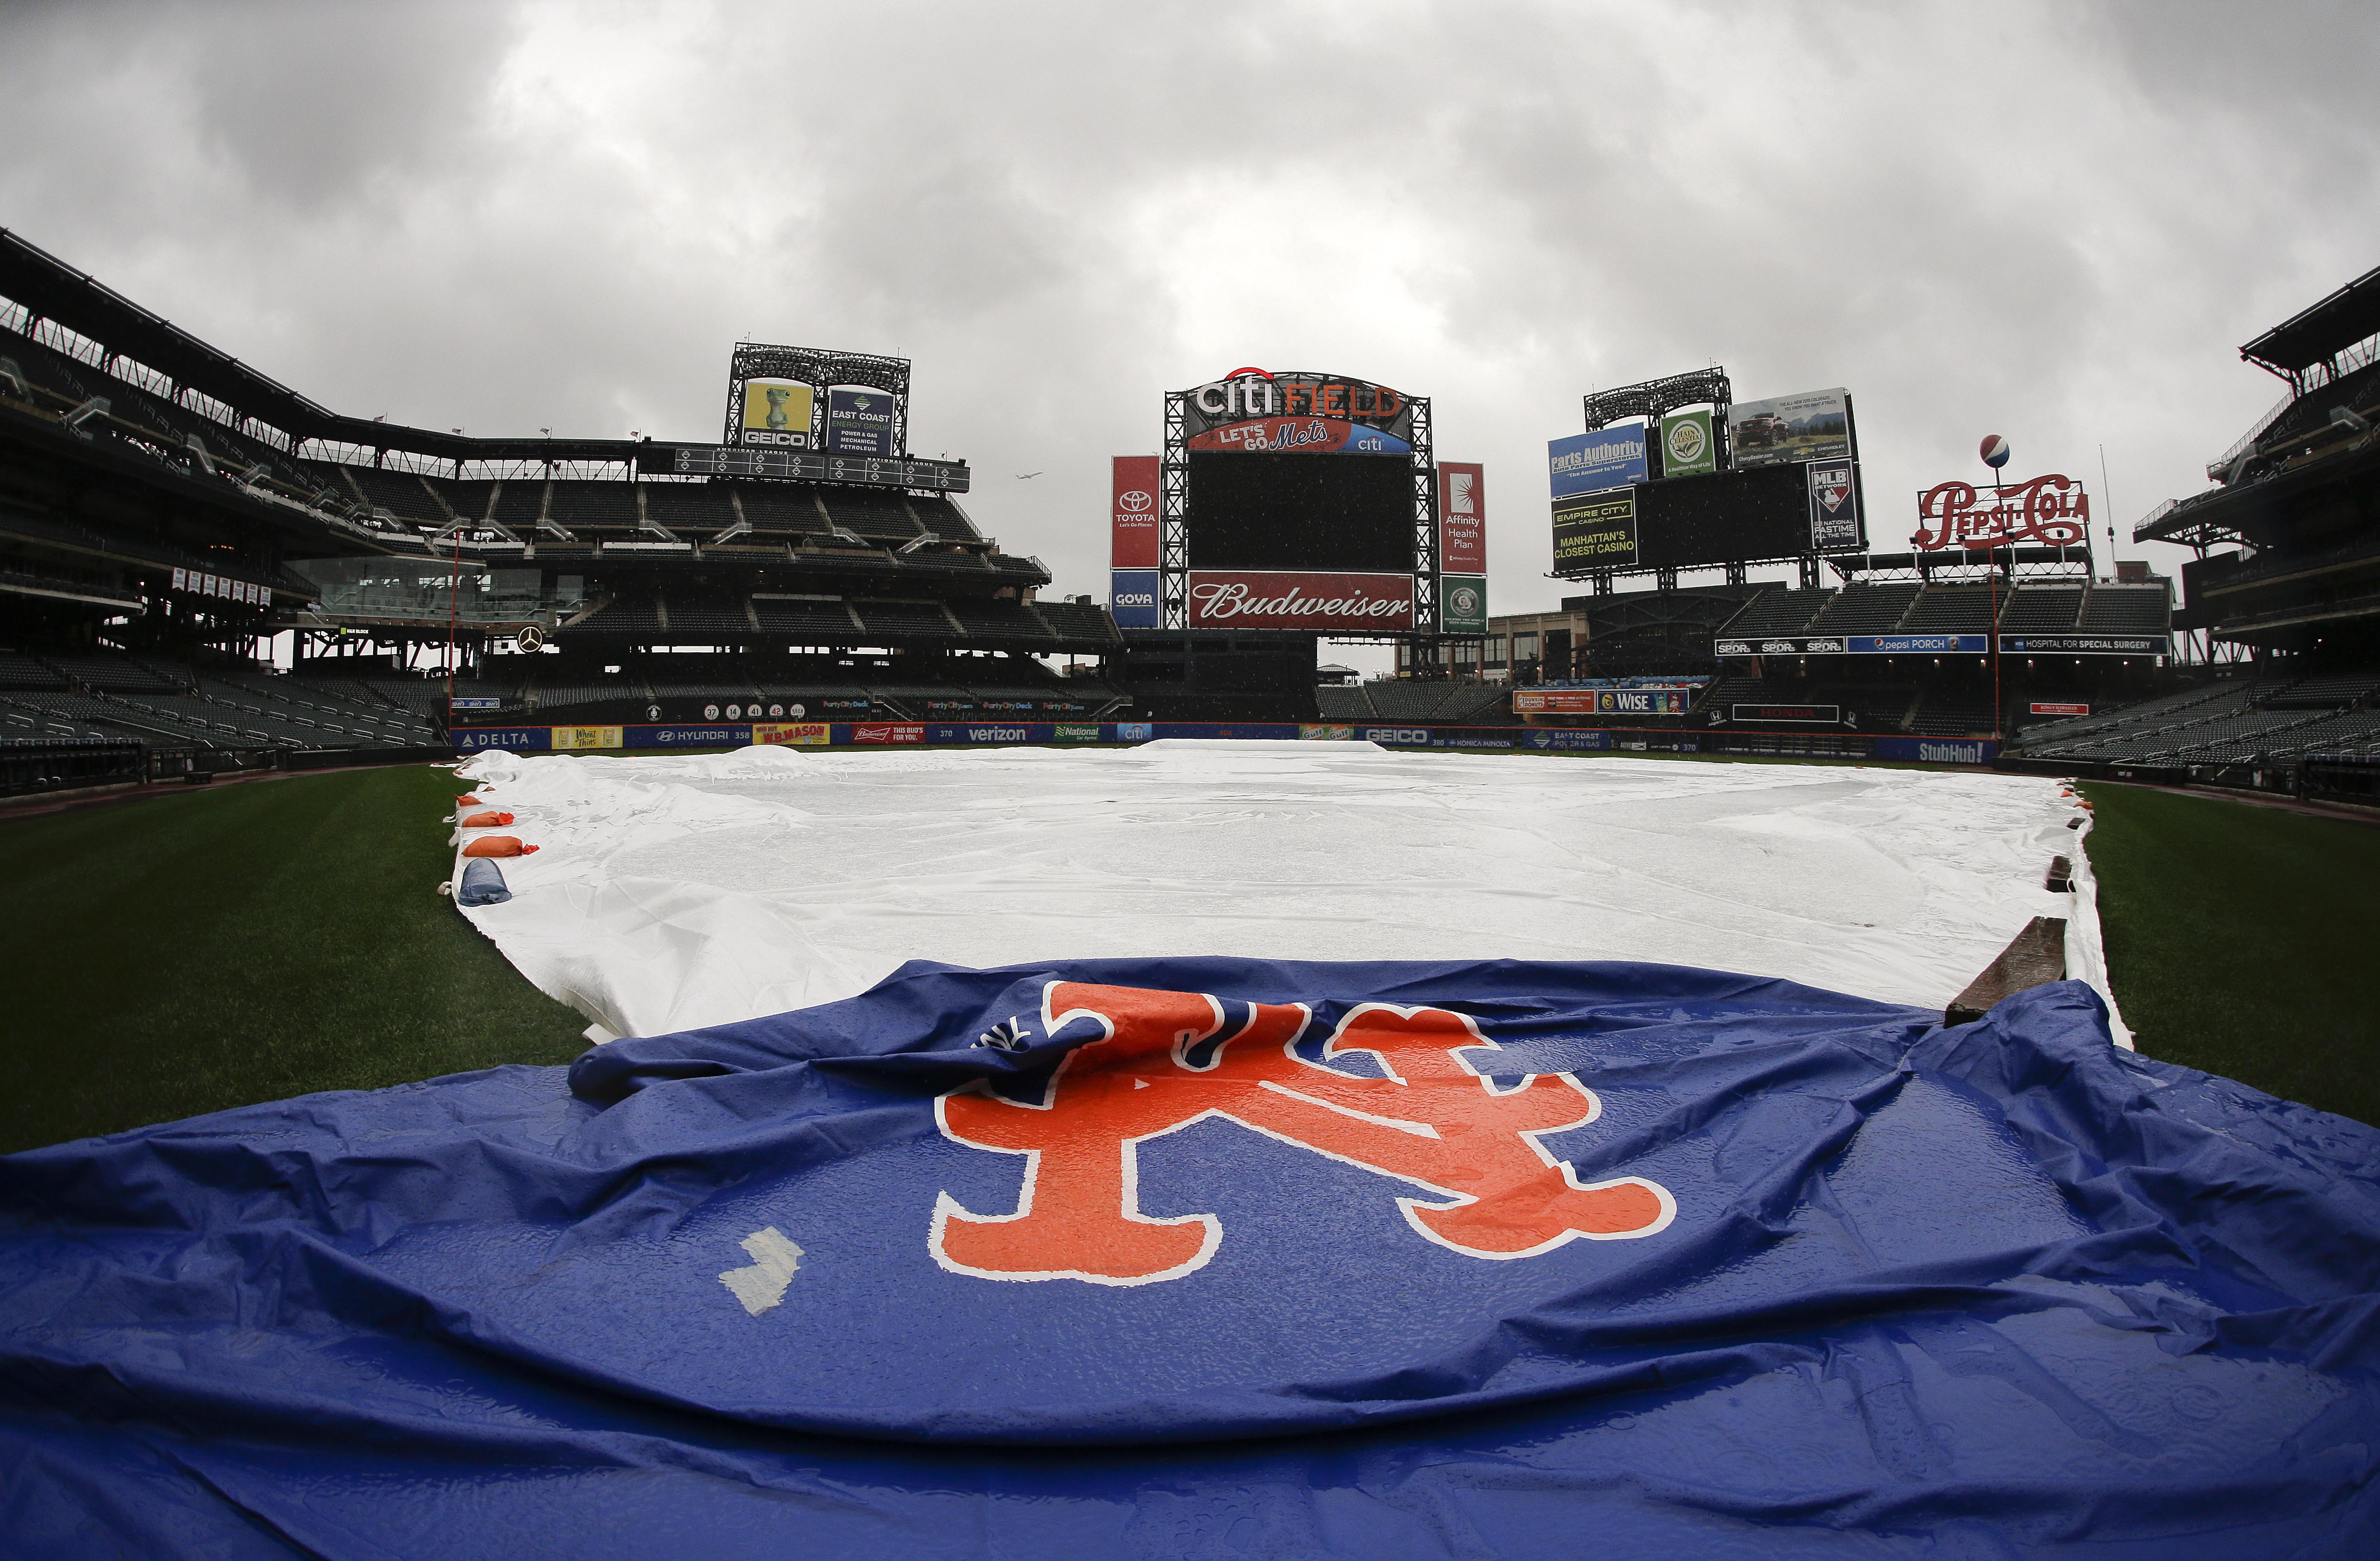 A tarp covers the field at Citi Field as a steady rain falls, Friday, Oct. 2, 2015, in New York. The baseball game between the Washington Nationals and New York Mets was postponed until Saturday because of rain. (AP Photo/Julie Jacobson)